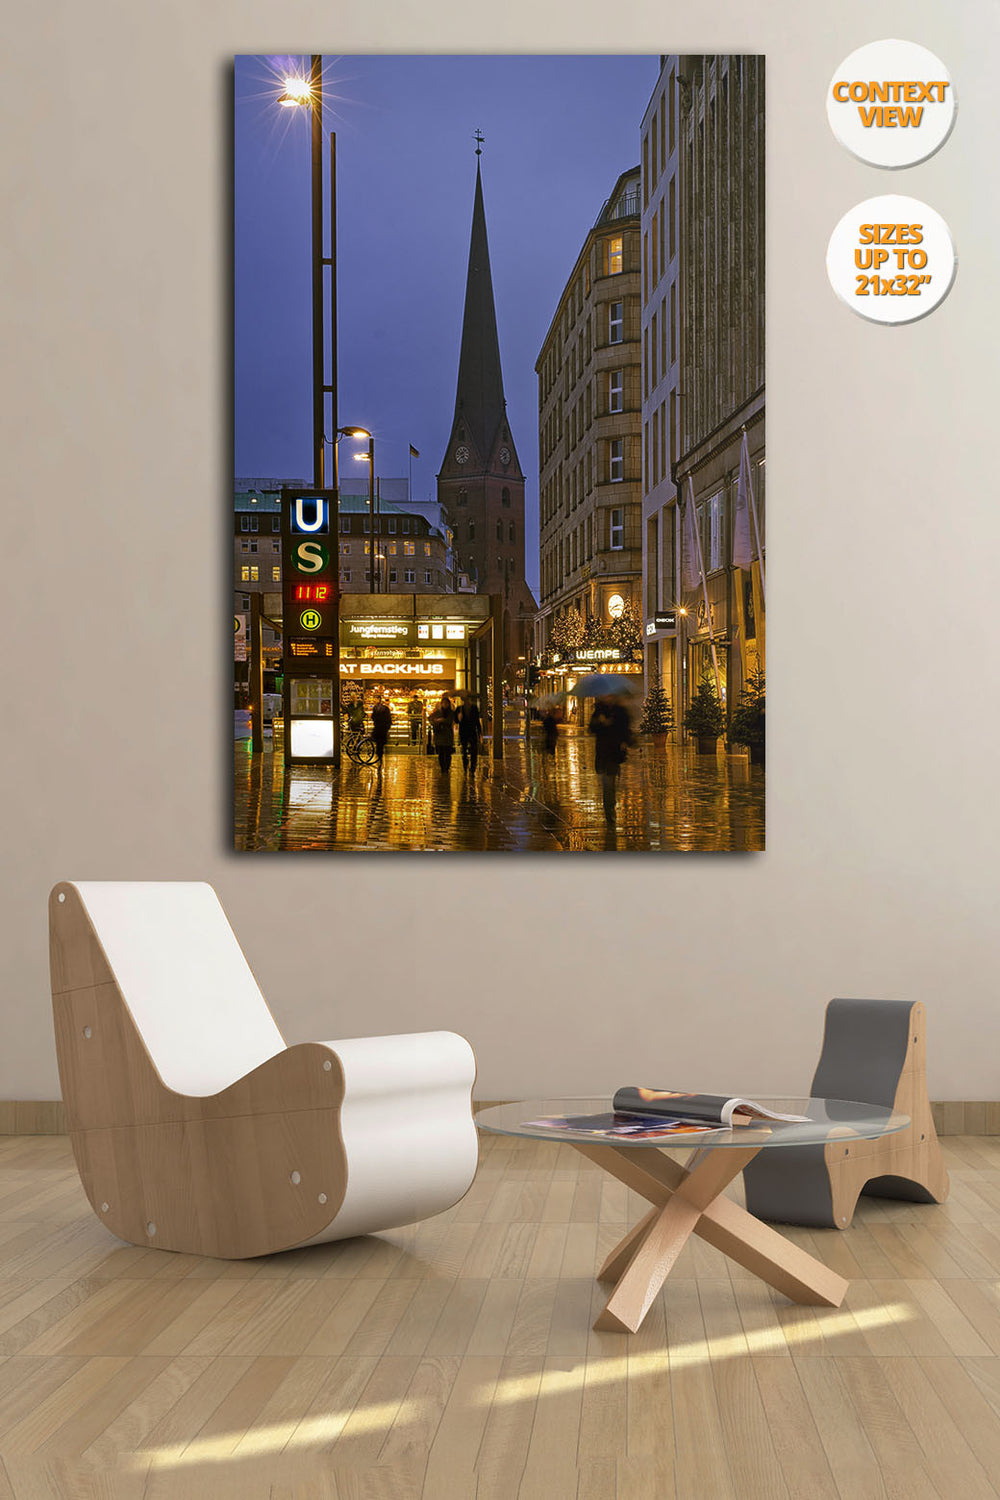 Jungfernstieg at dusk, Hamburg. | Open Edition Fine Art Print.